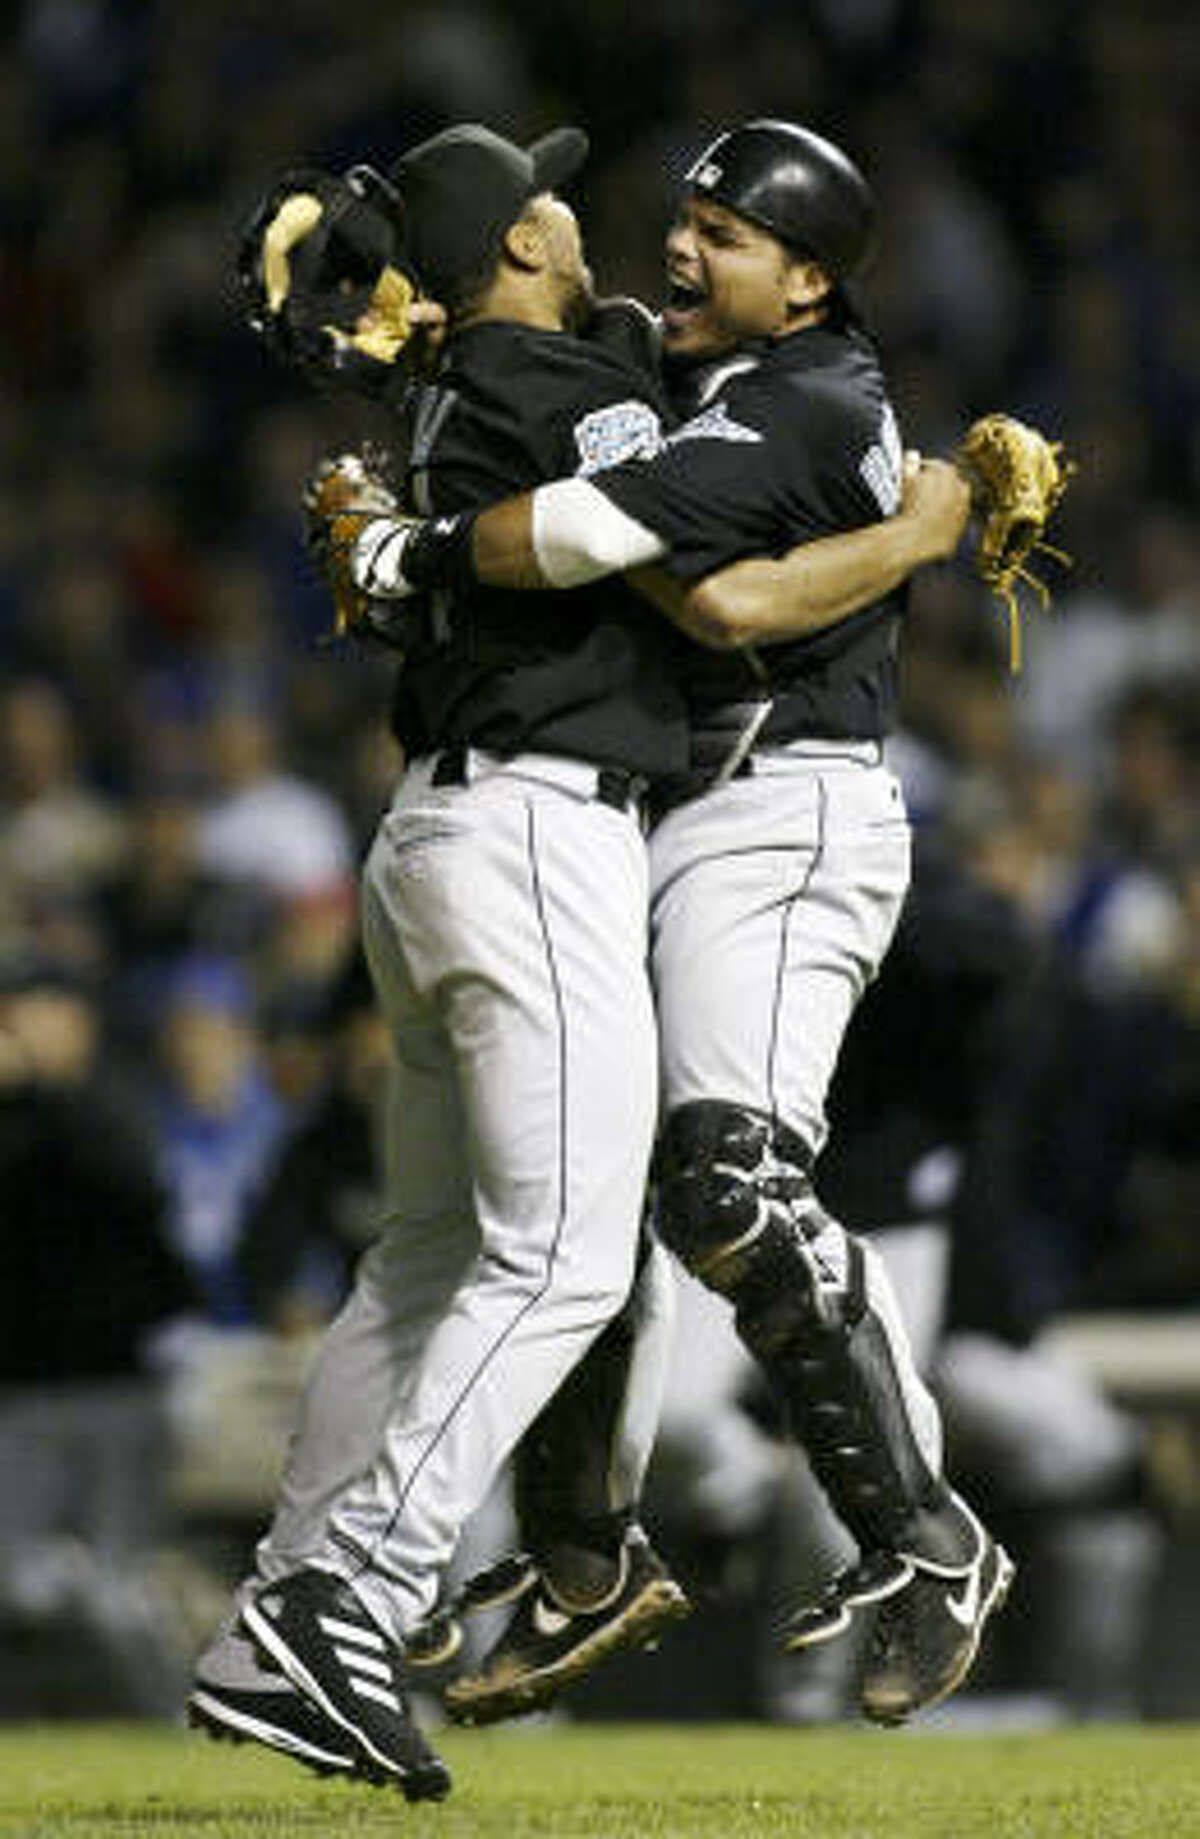 2003: Rodriguez and Marlins reliever Ugeth Urbina, left, enjoy the Marlins' NLCS victory that preceded their unlikely World Series win over the Yankees